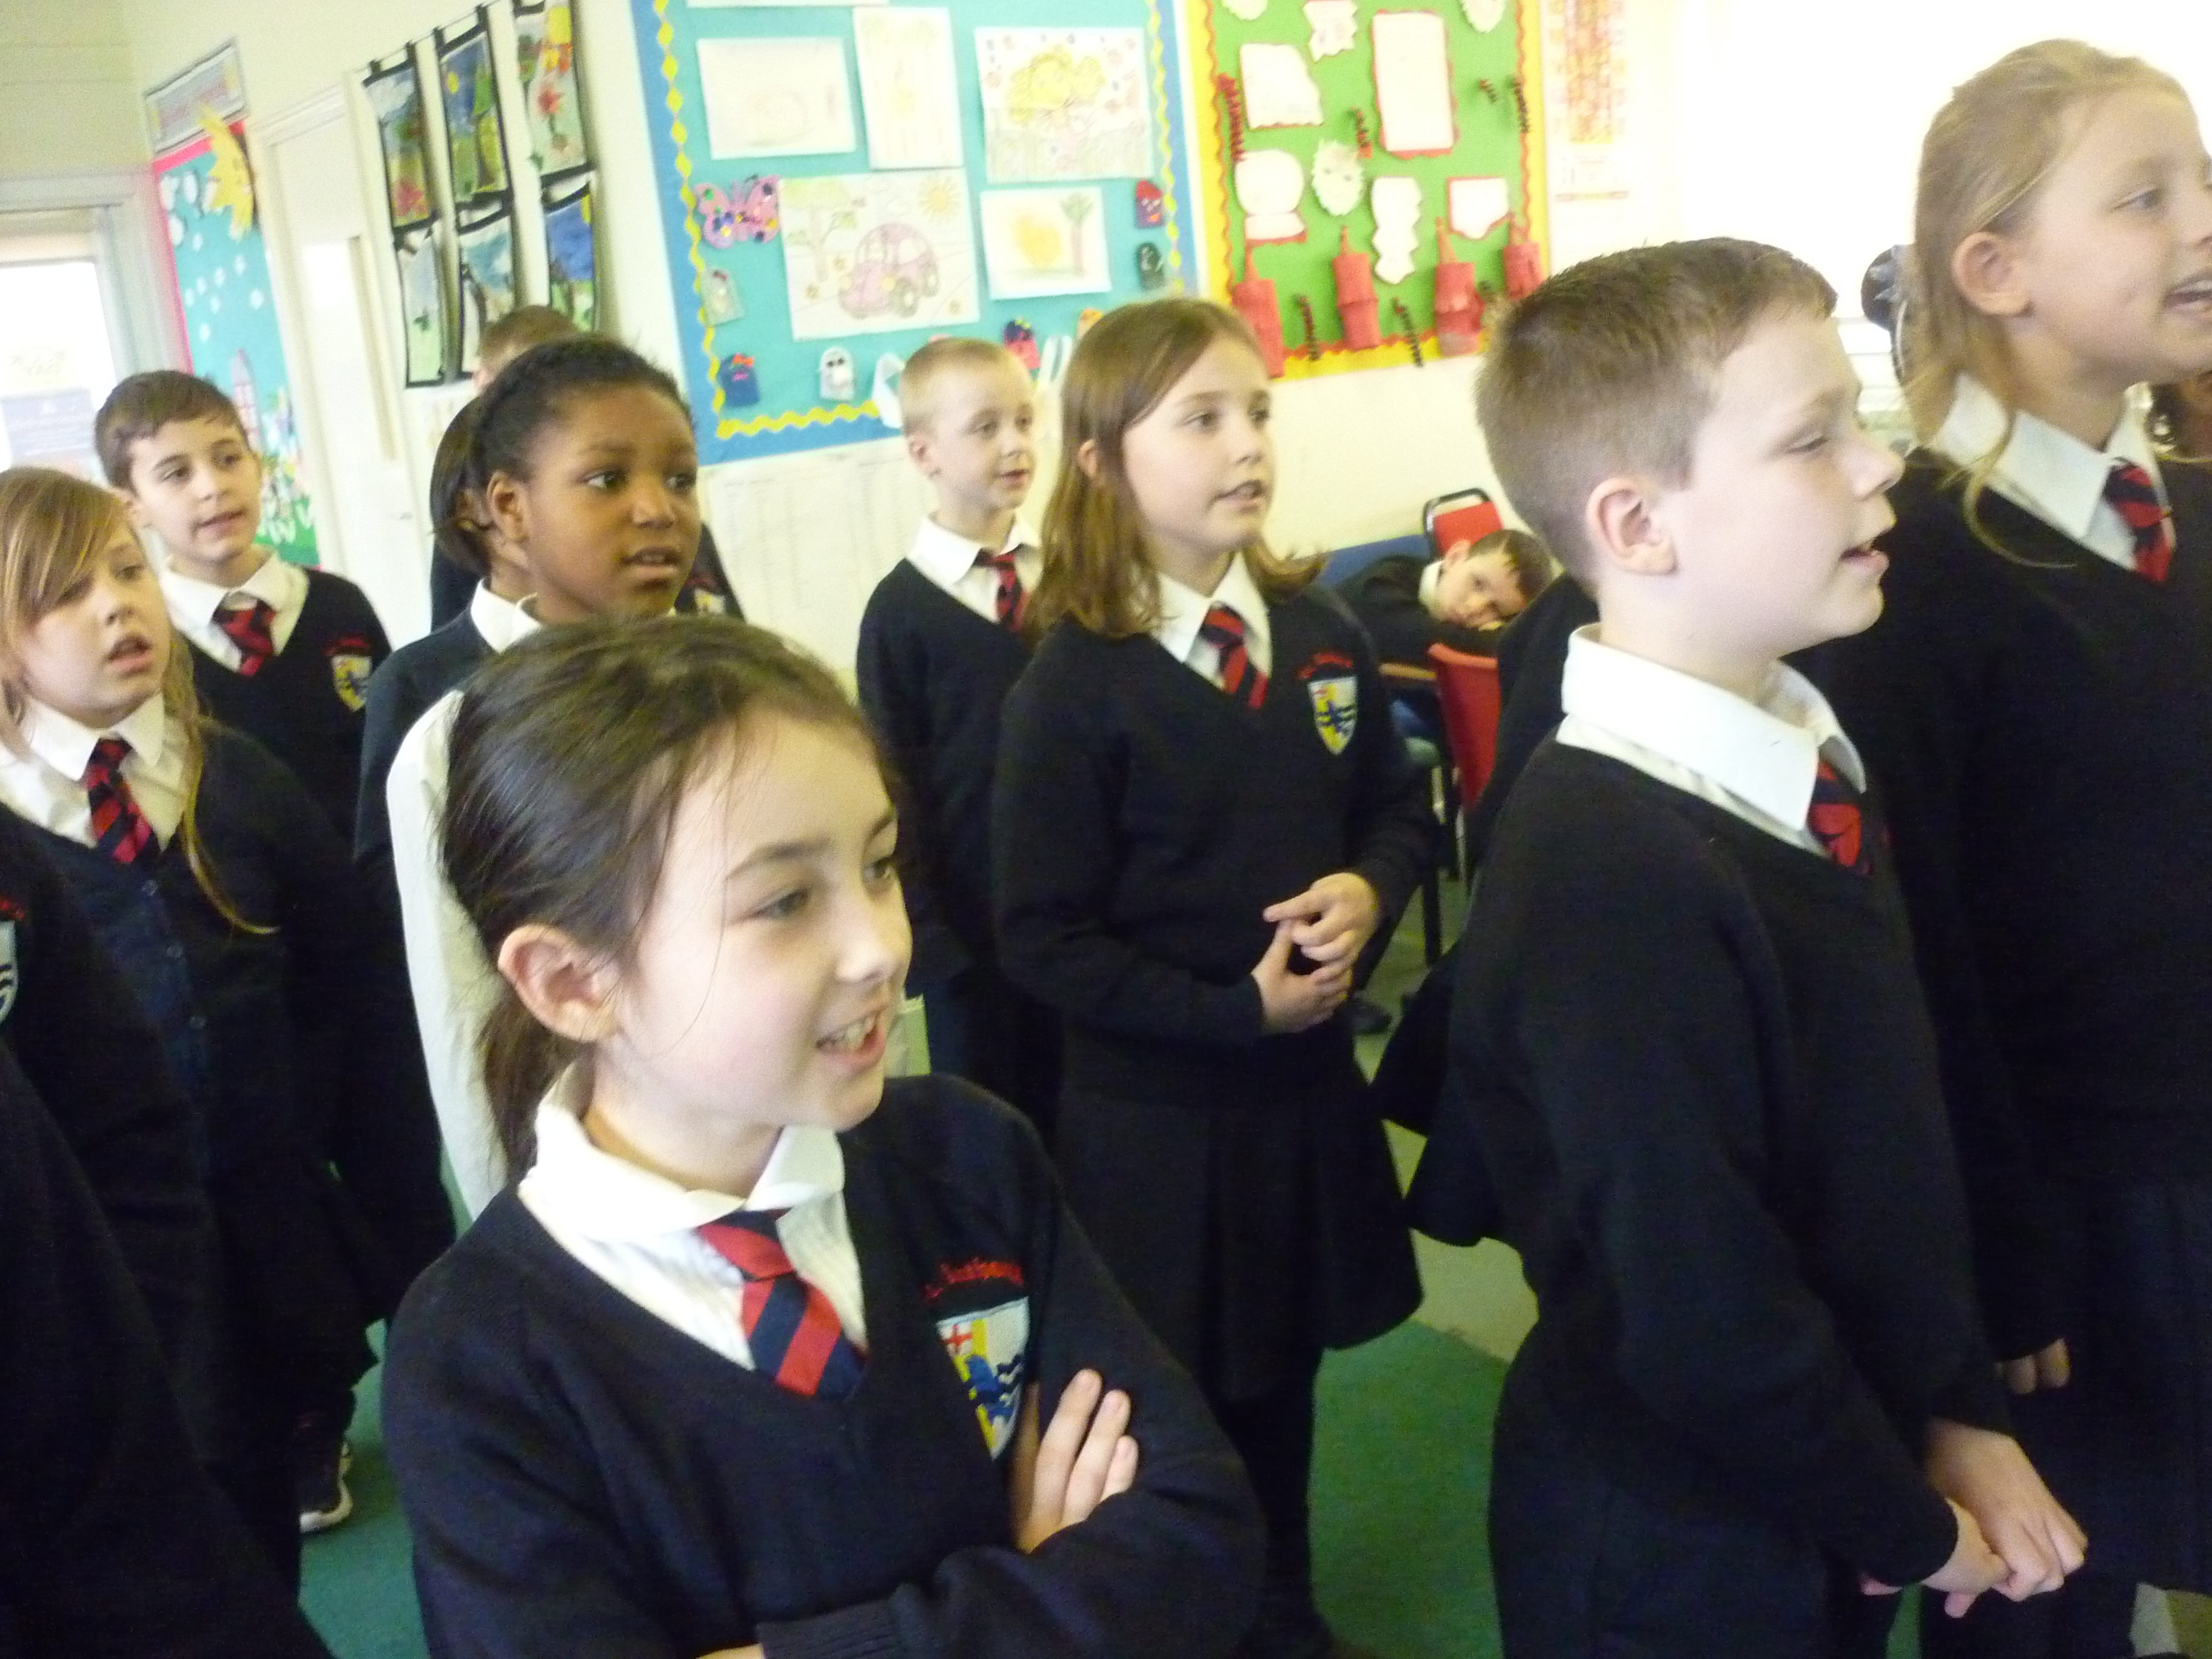 Year 4 singing the Beverley Naidoo song, their class author.